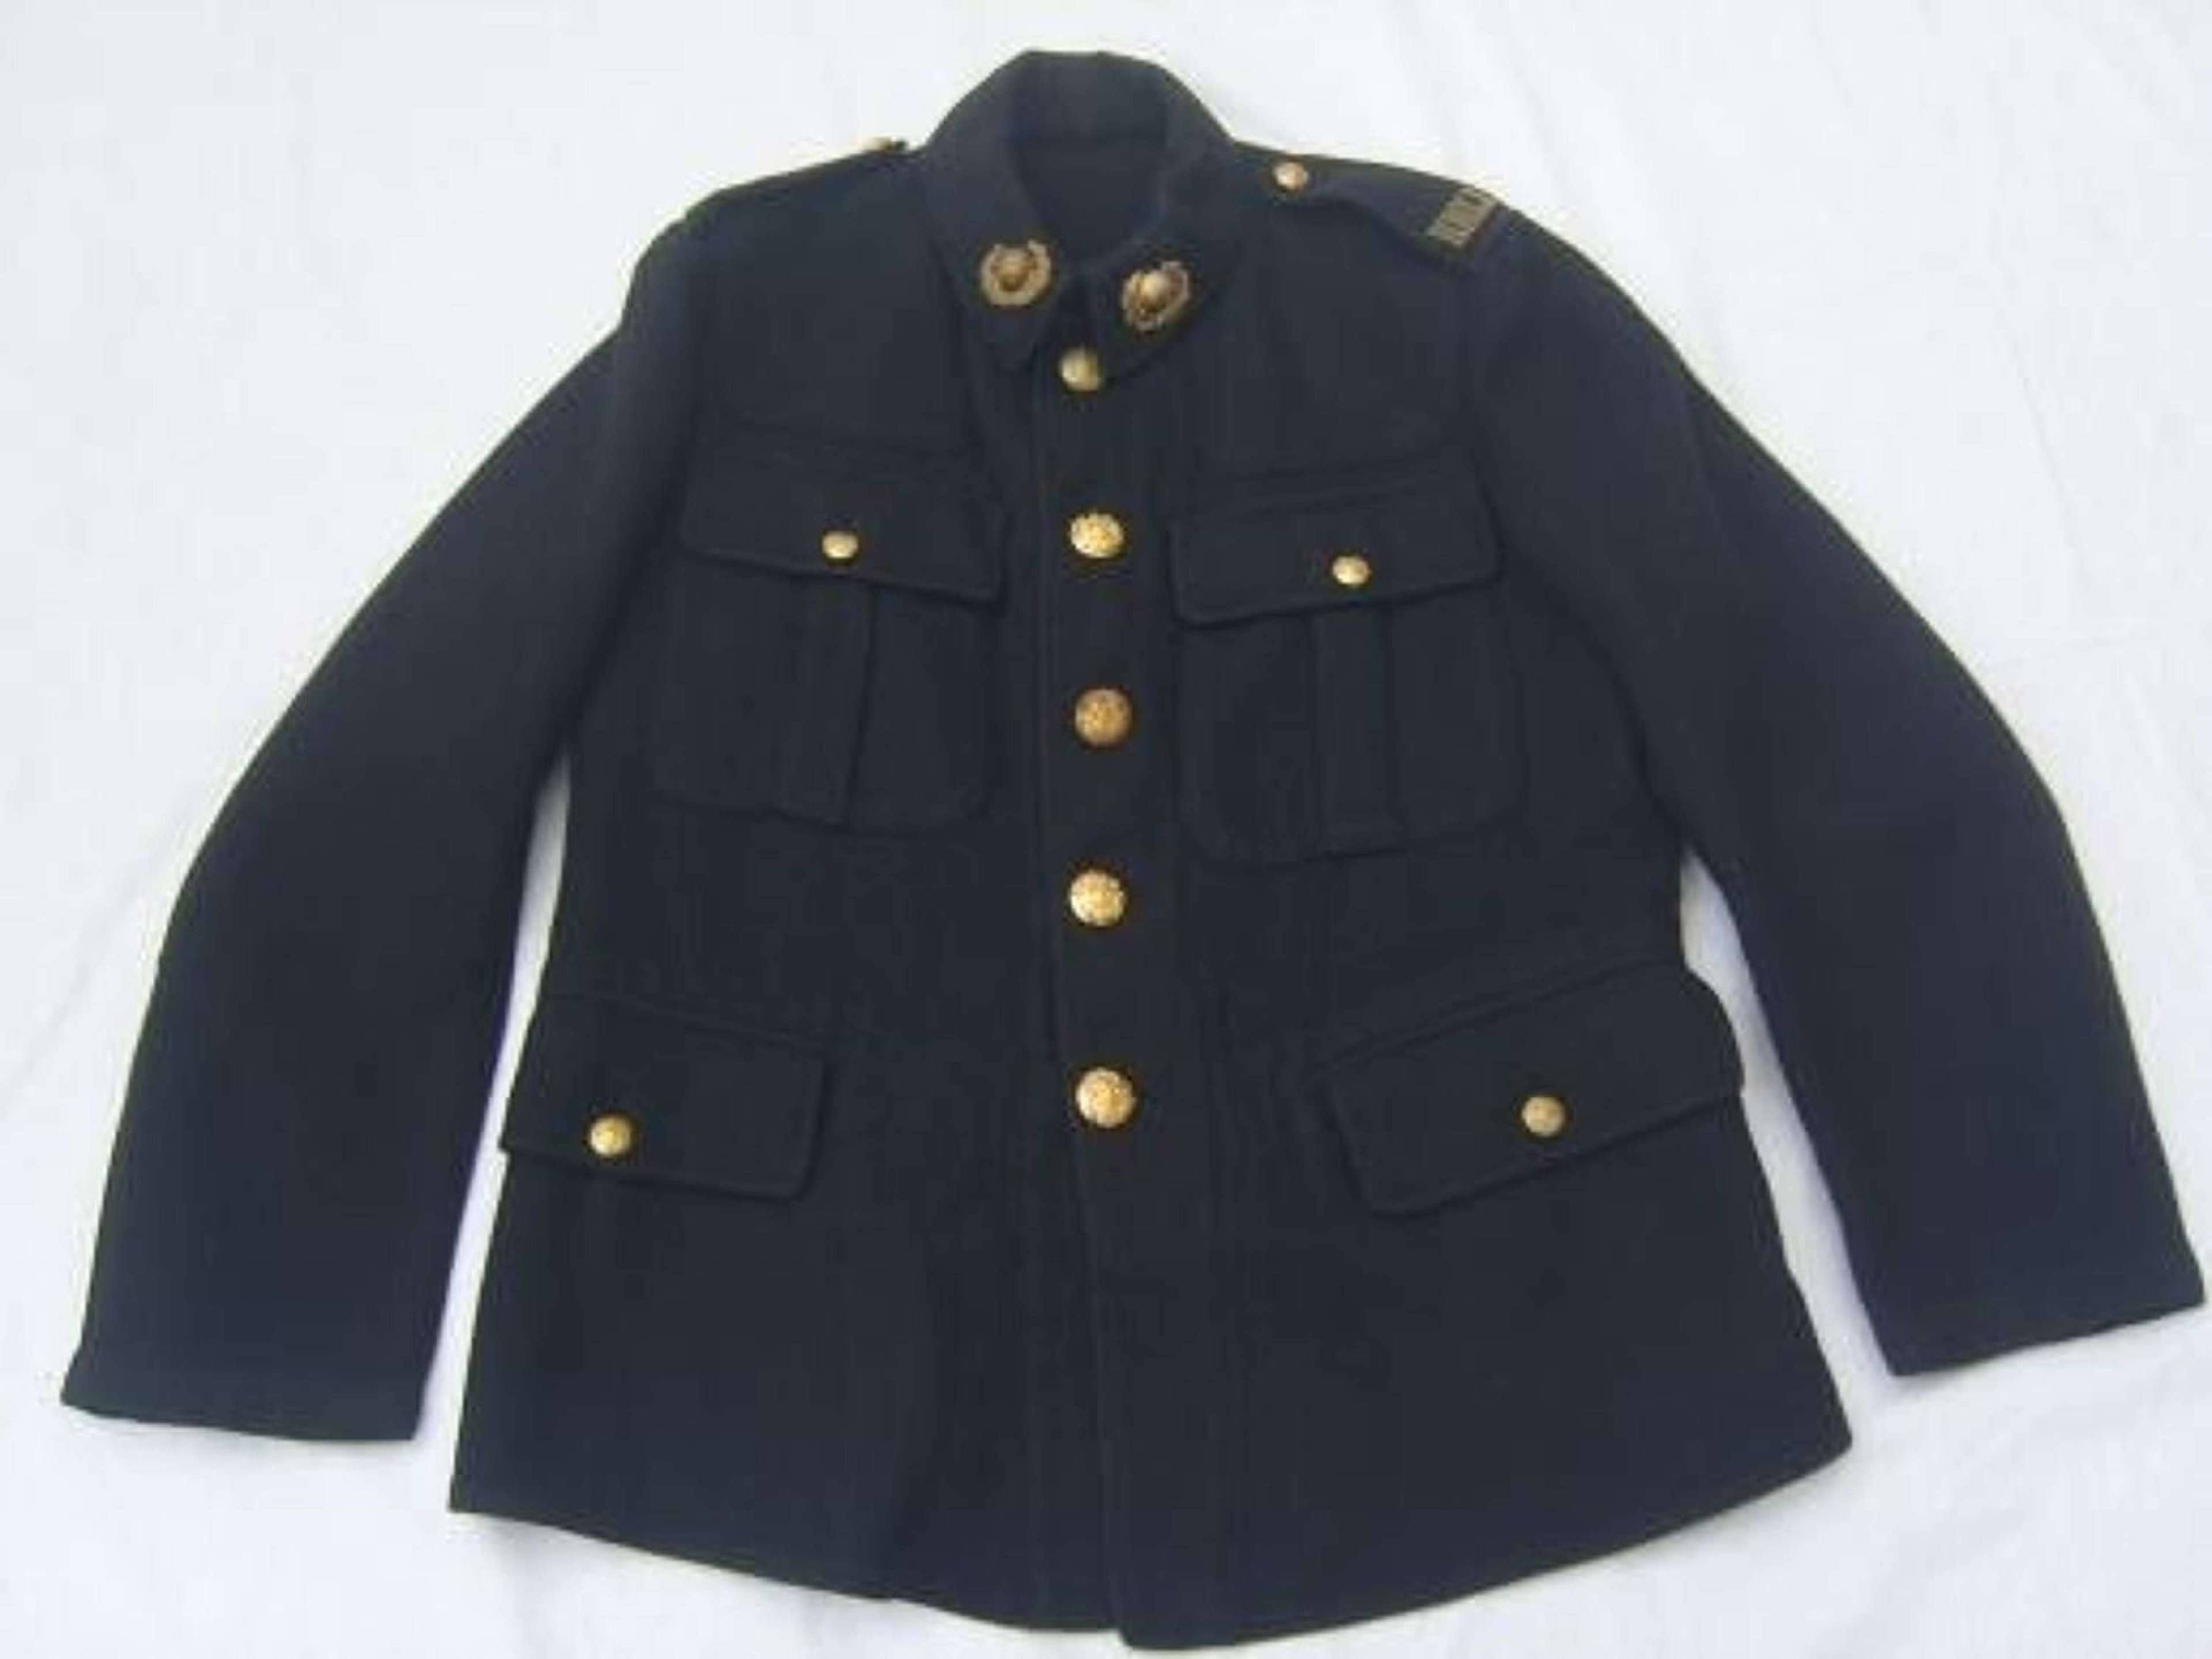 1902 PATTERN SERVICE DRESS TUNIC TO RMLI